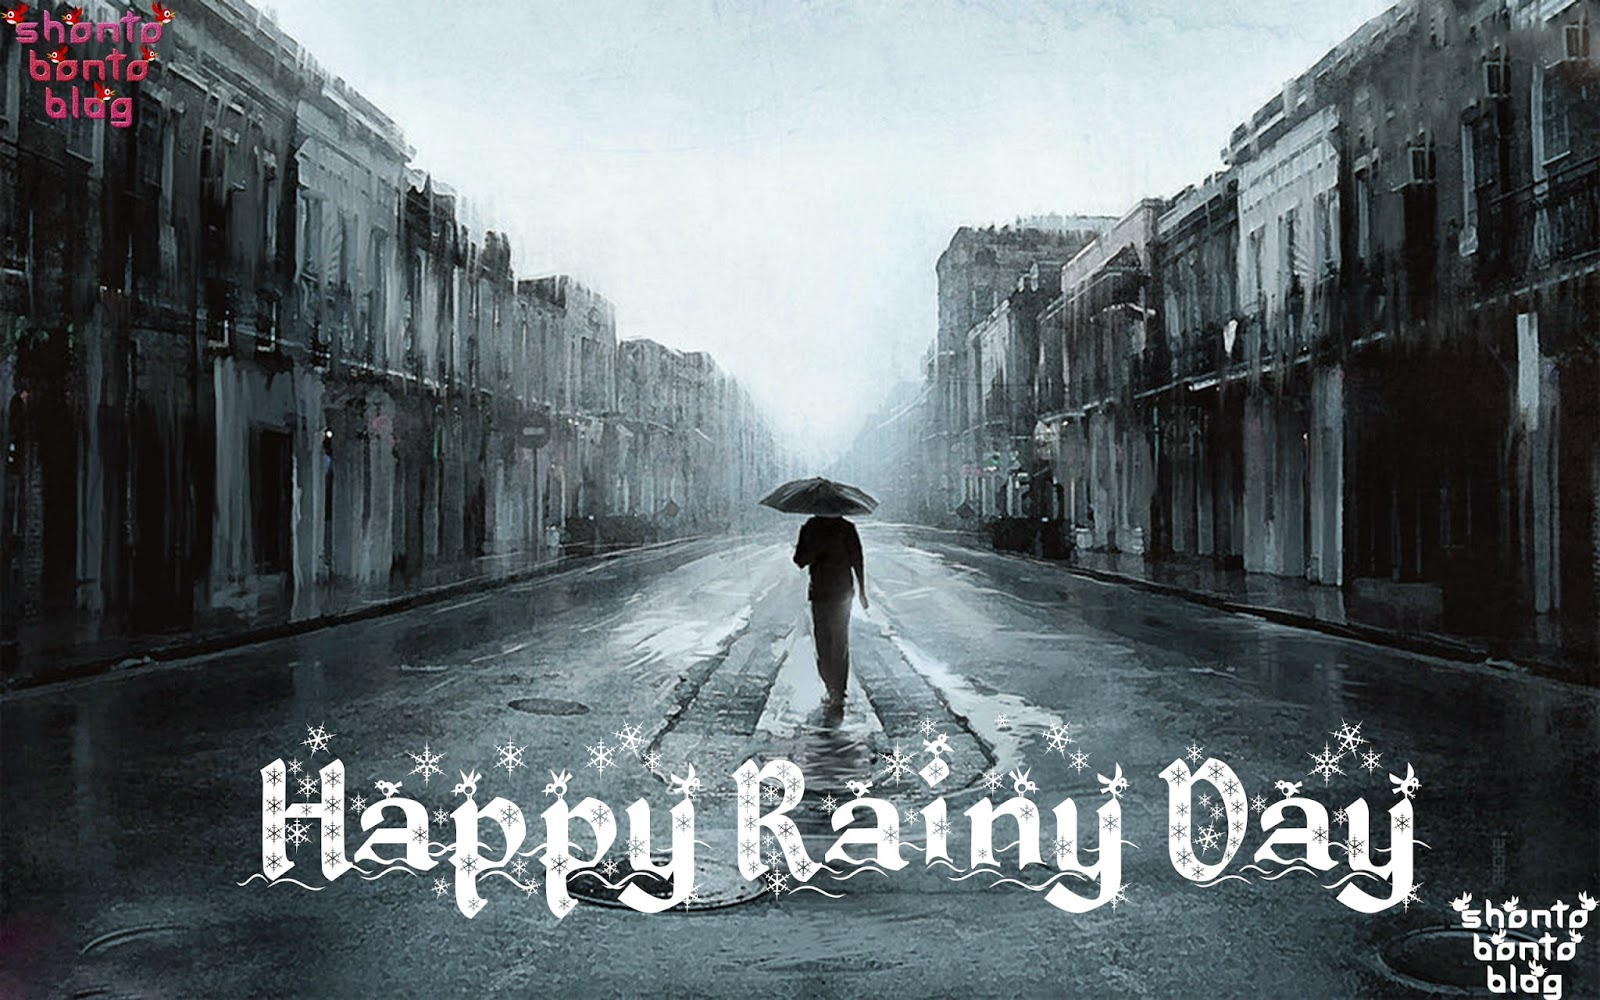 rainy day images wallpapers 43 wallpapers � adorable